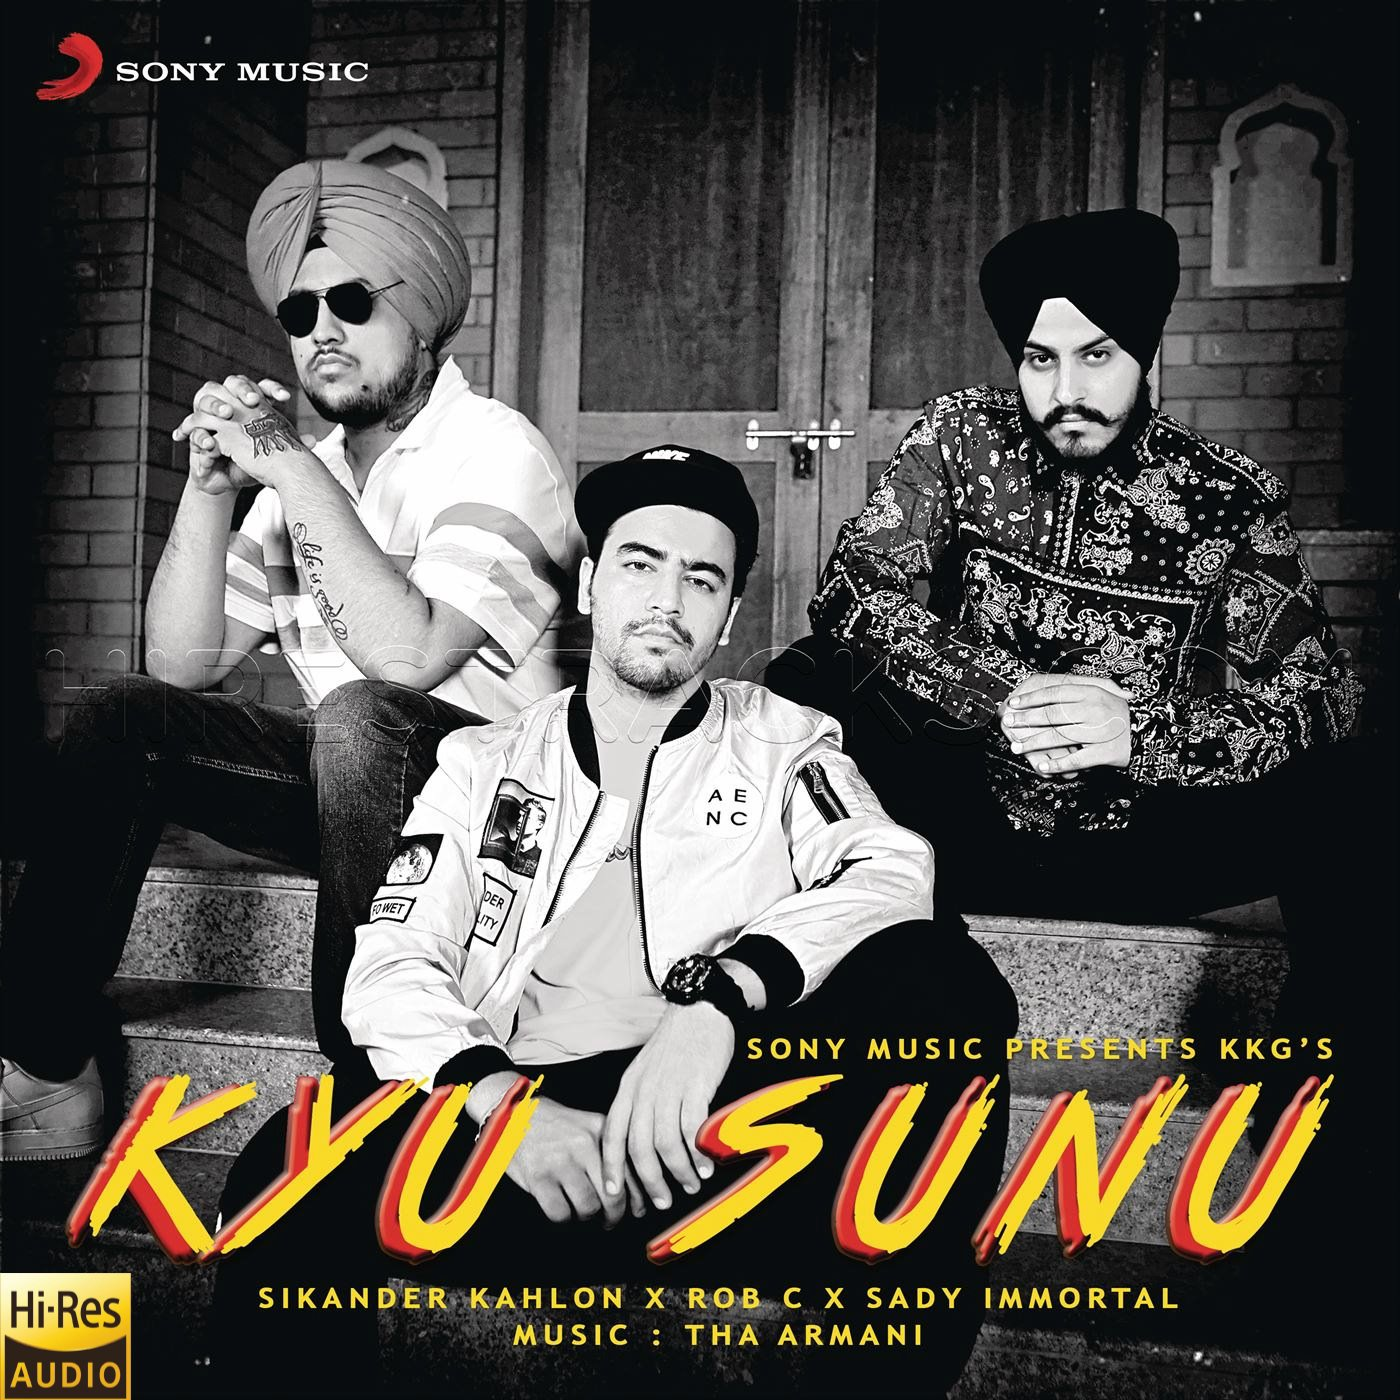 Kyu Sunu – Single (2019) (Sikander Kahlon, Rob C & Sady Immortal) [24 BIT-48 KHZ]